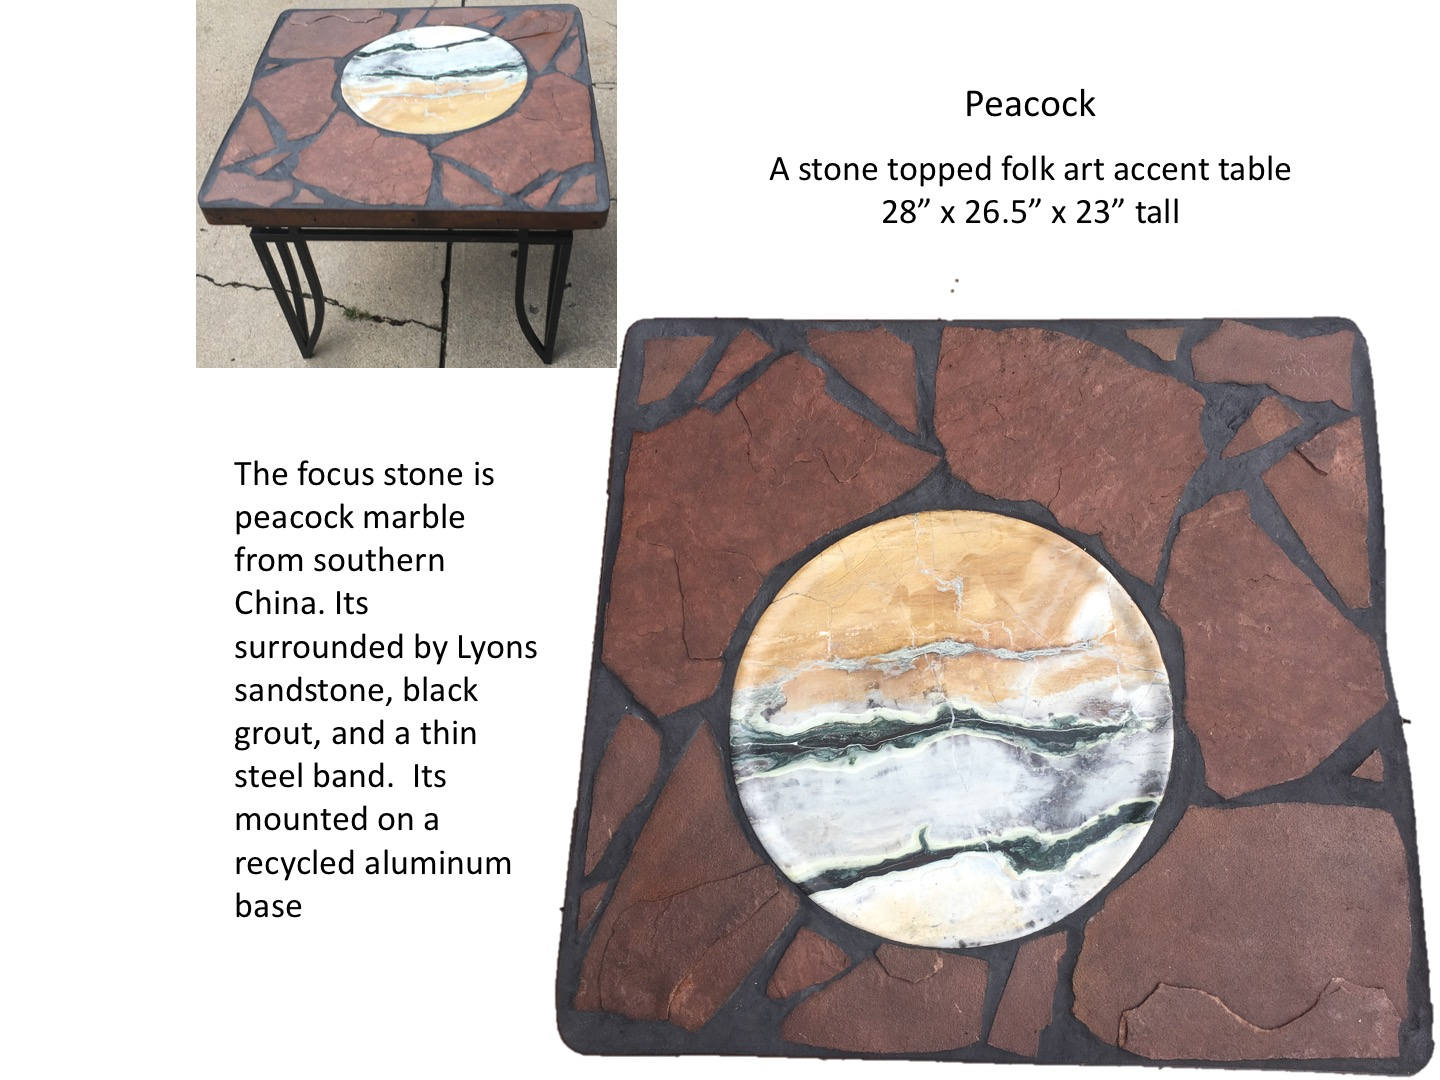 peacock stone topped folk art accent table tall fullxfull thin painted bedside chests high top dining your focus runner pattern hexagon target outdoor garden side affordable sofa